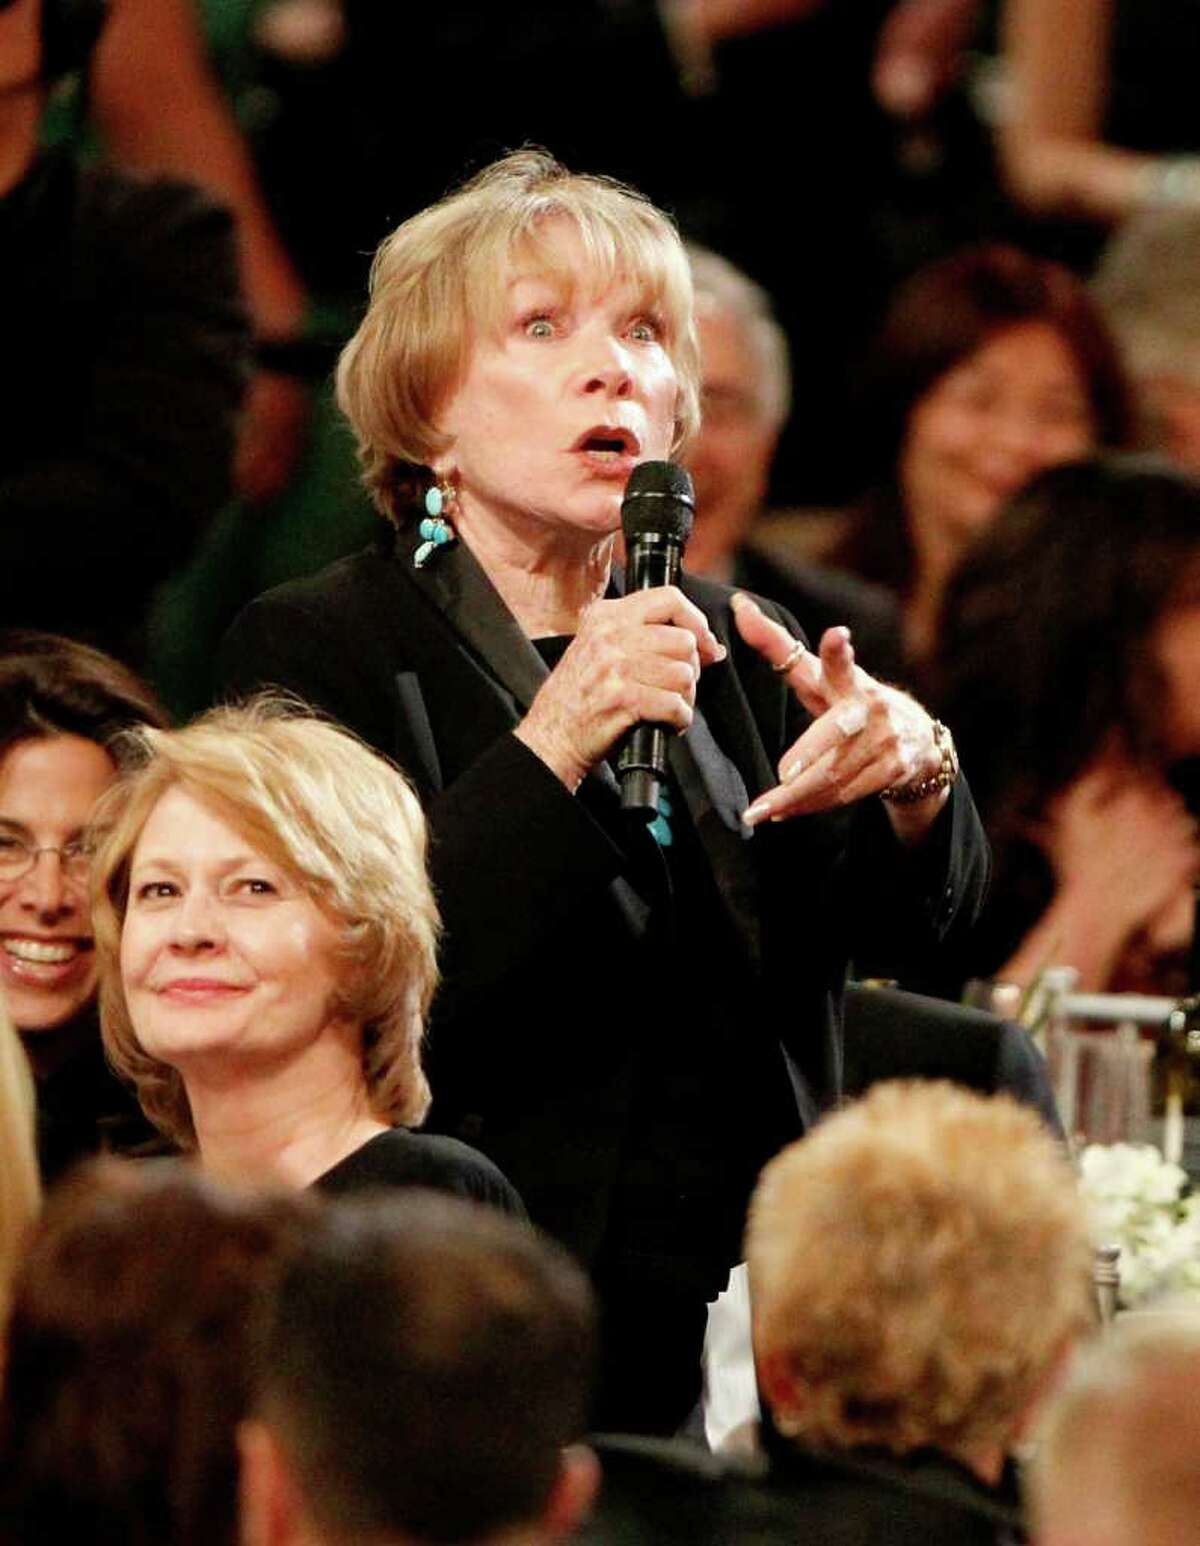 Actress Shirley MacLaine in the audience during the 38th AFI Life Achievement Award honoring Mike Nichols held at Sony Pictures Studios on June 10, 2010, in Culver City, Calif. (Christopher Polk / Getty Images for AFI)